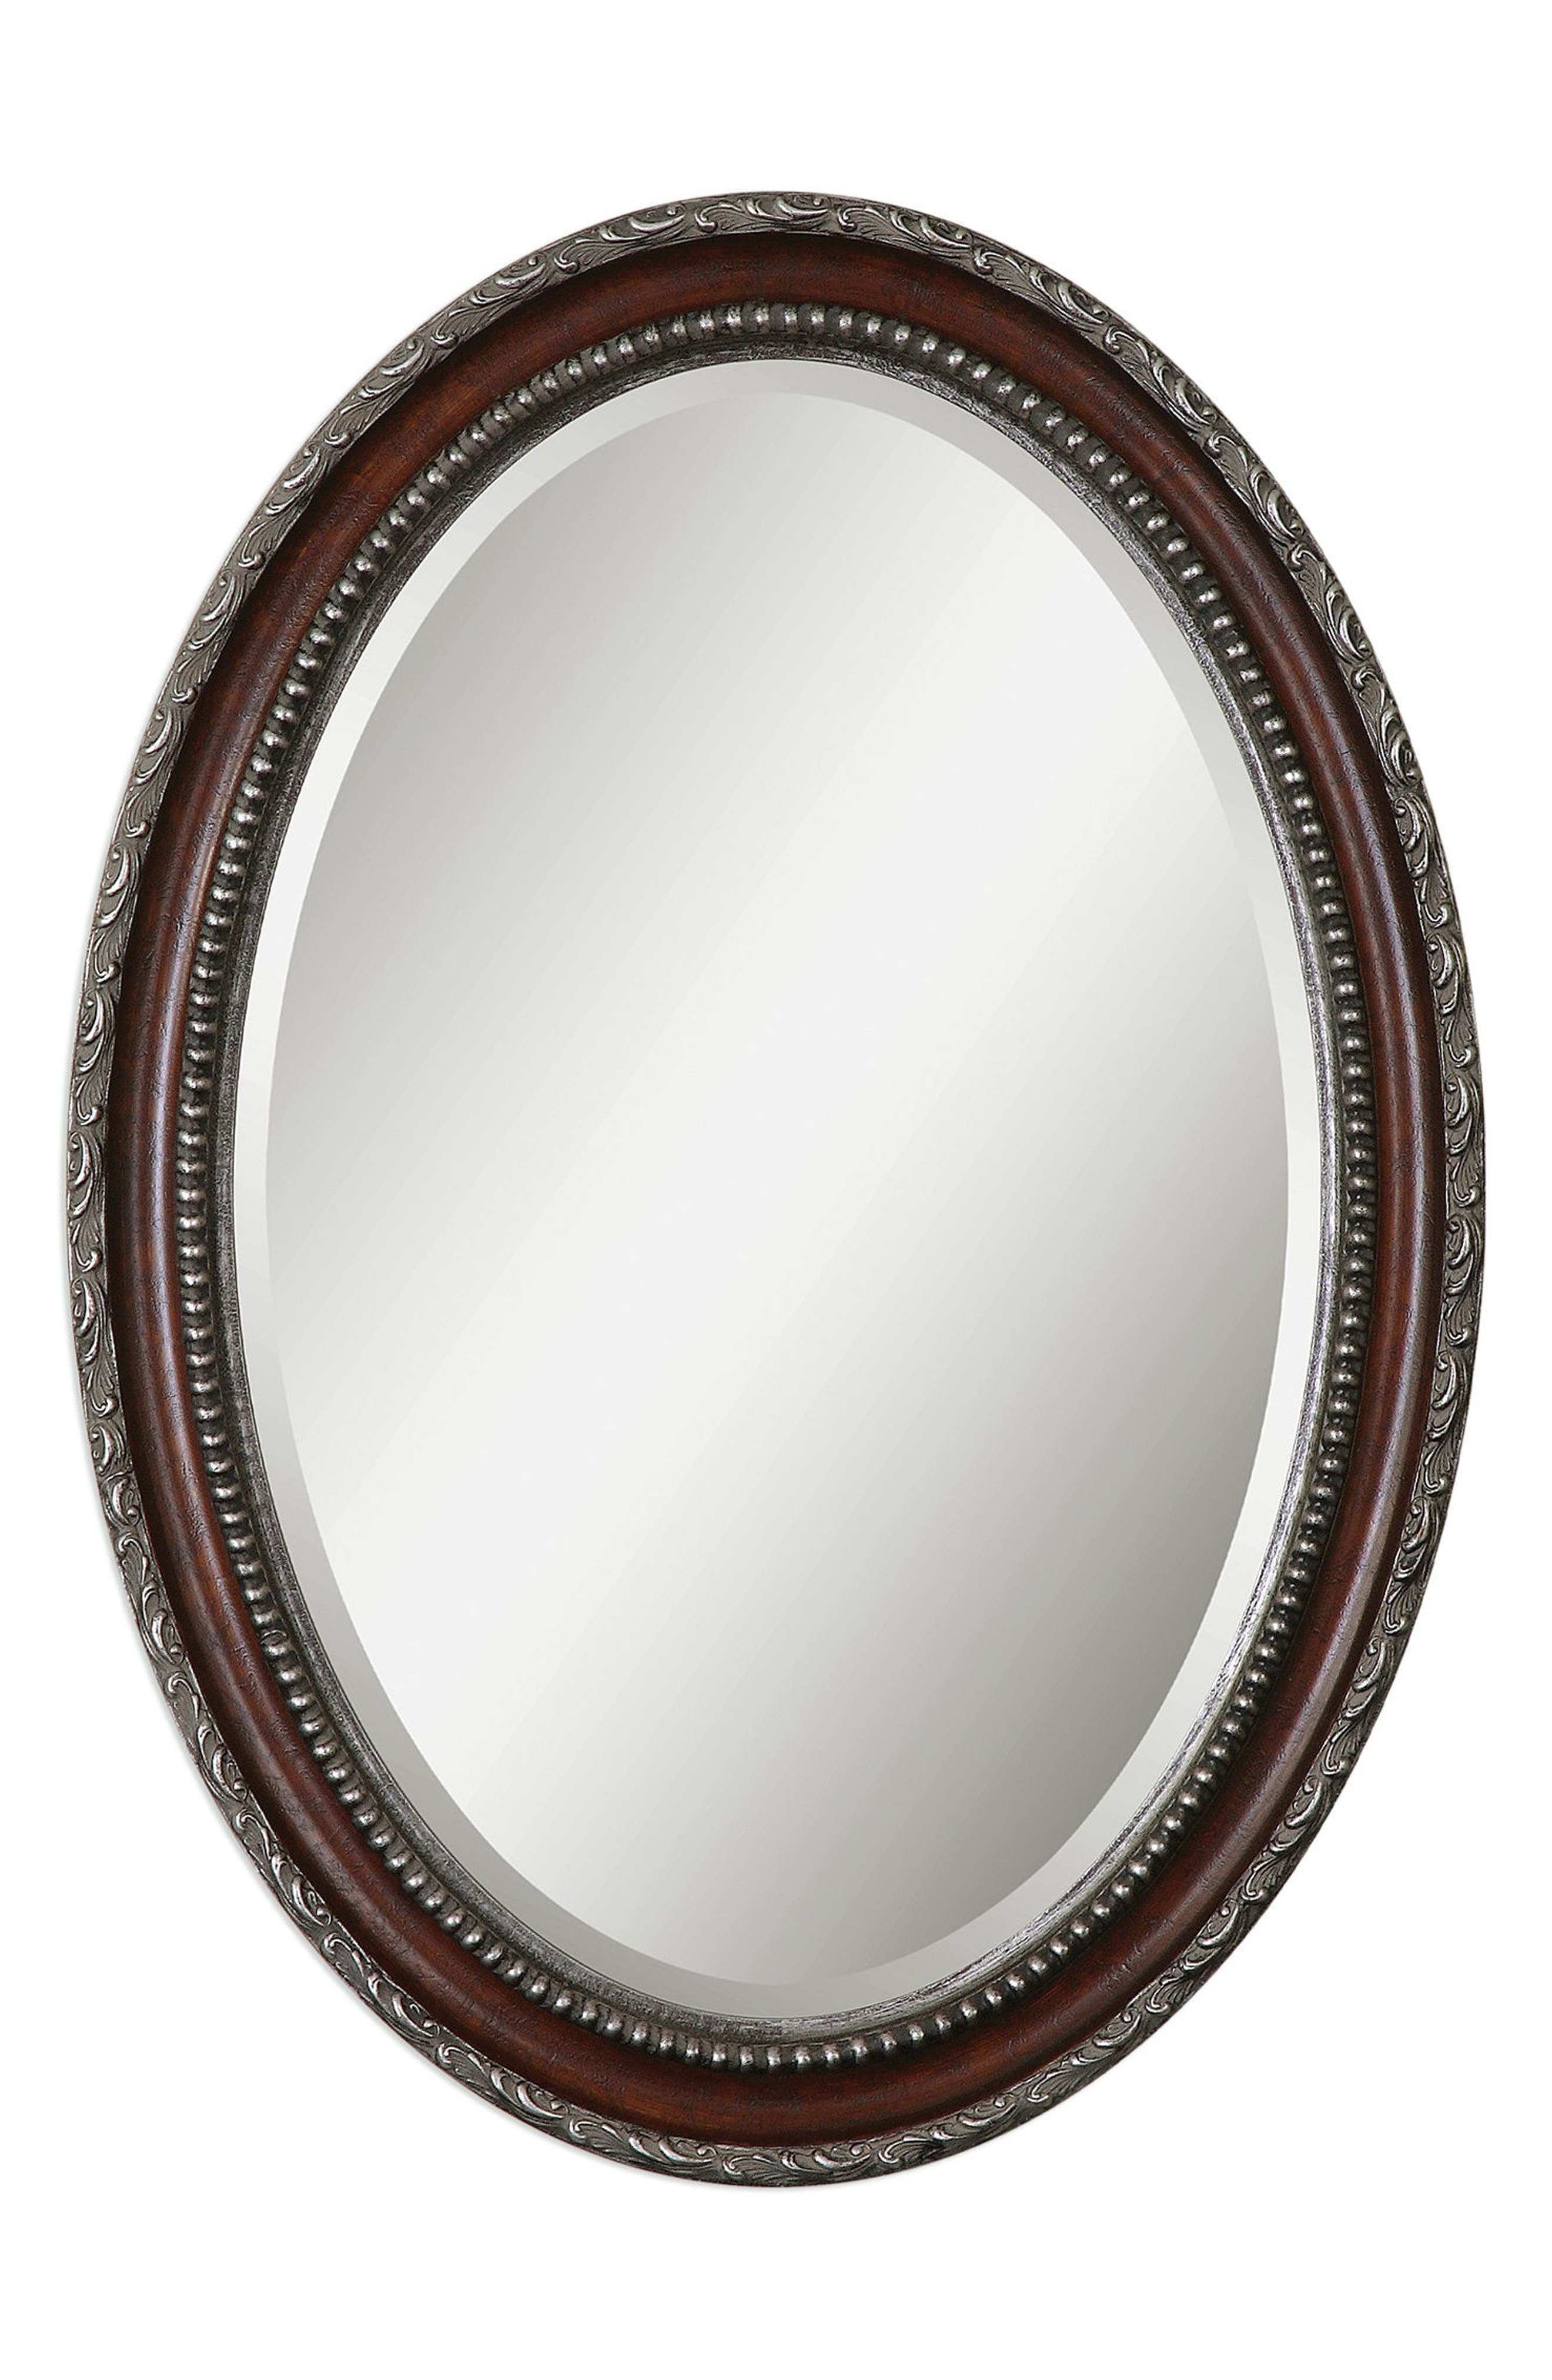 Montrose Oval Wall Mirror,                             Main thumbnail 1, color,                             200